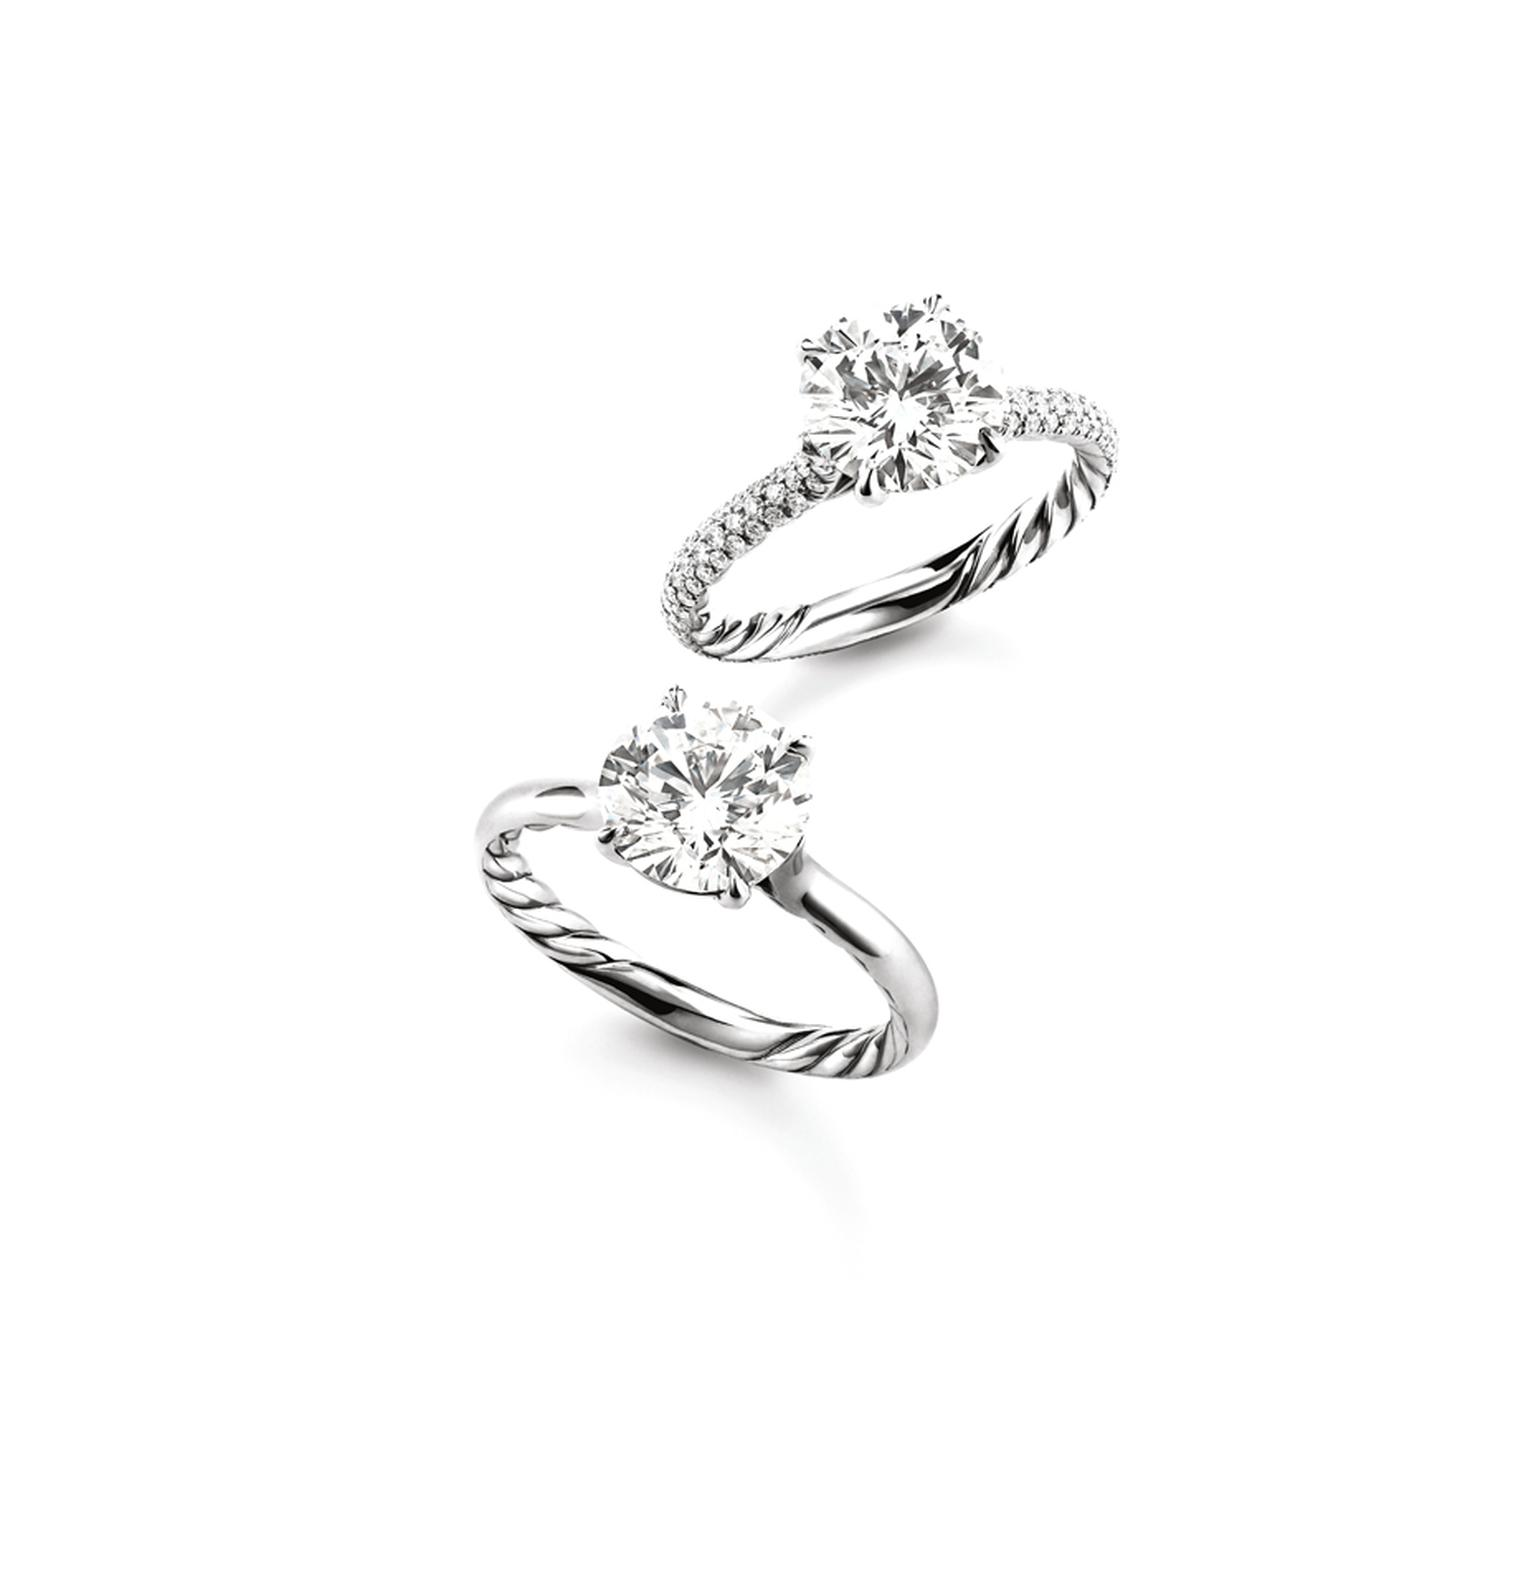 David Yurman Signature Cut engagement ring featuring a band with or without pave diamonds and the DY signature cable band.